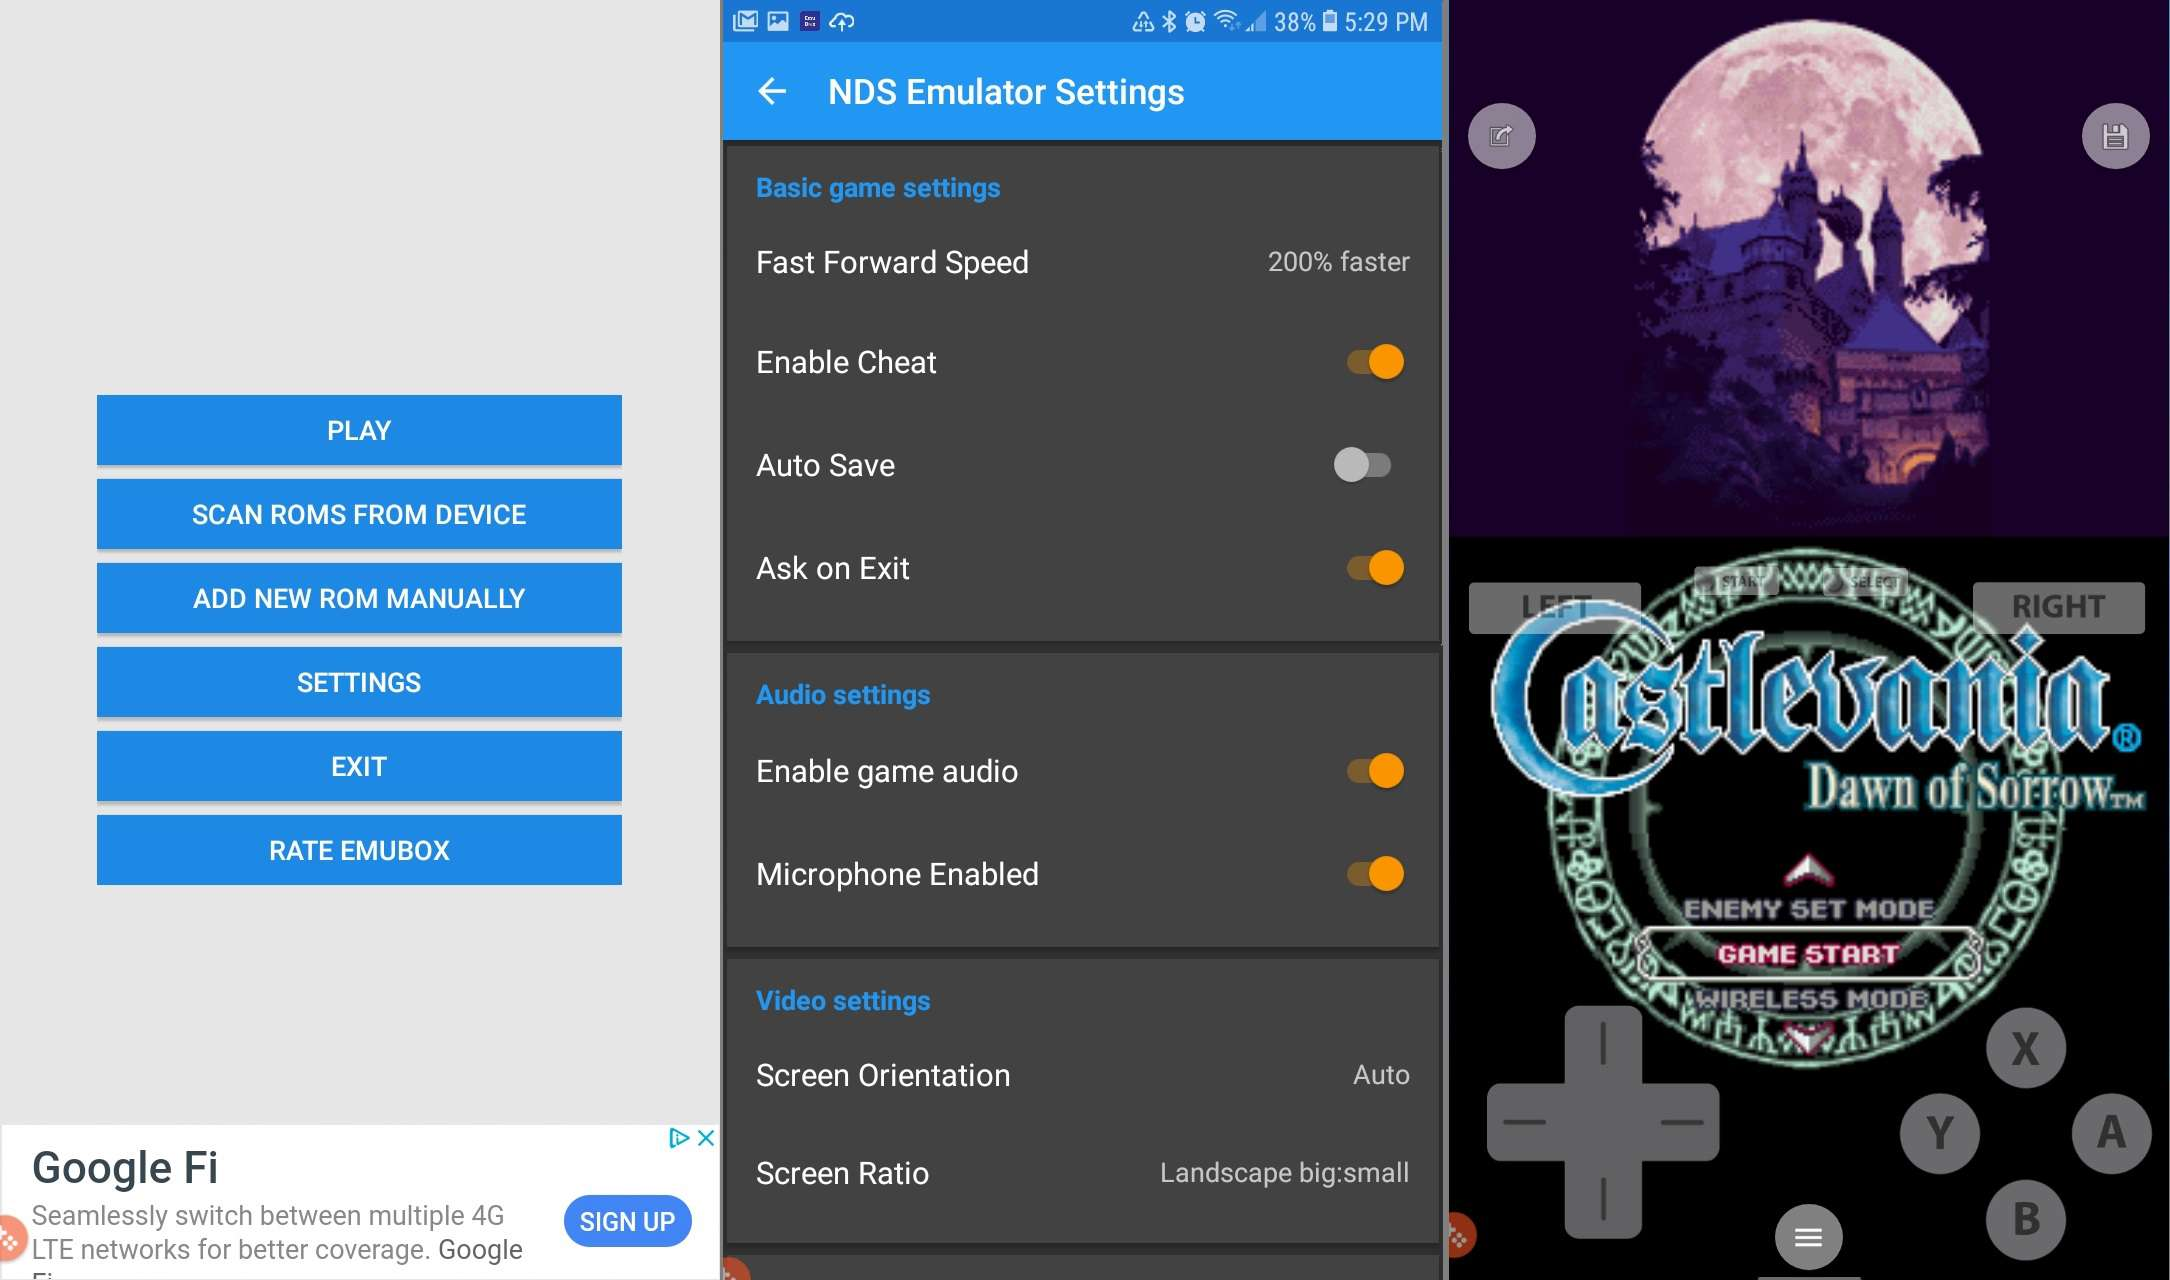 Castlevania: Dawn of Sorrow running on NDS4Droid for Android